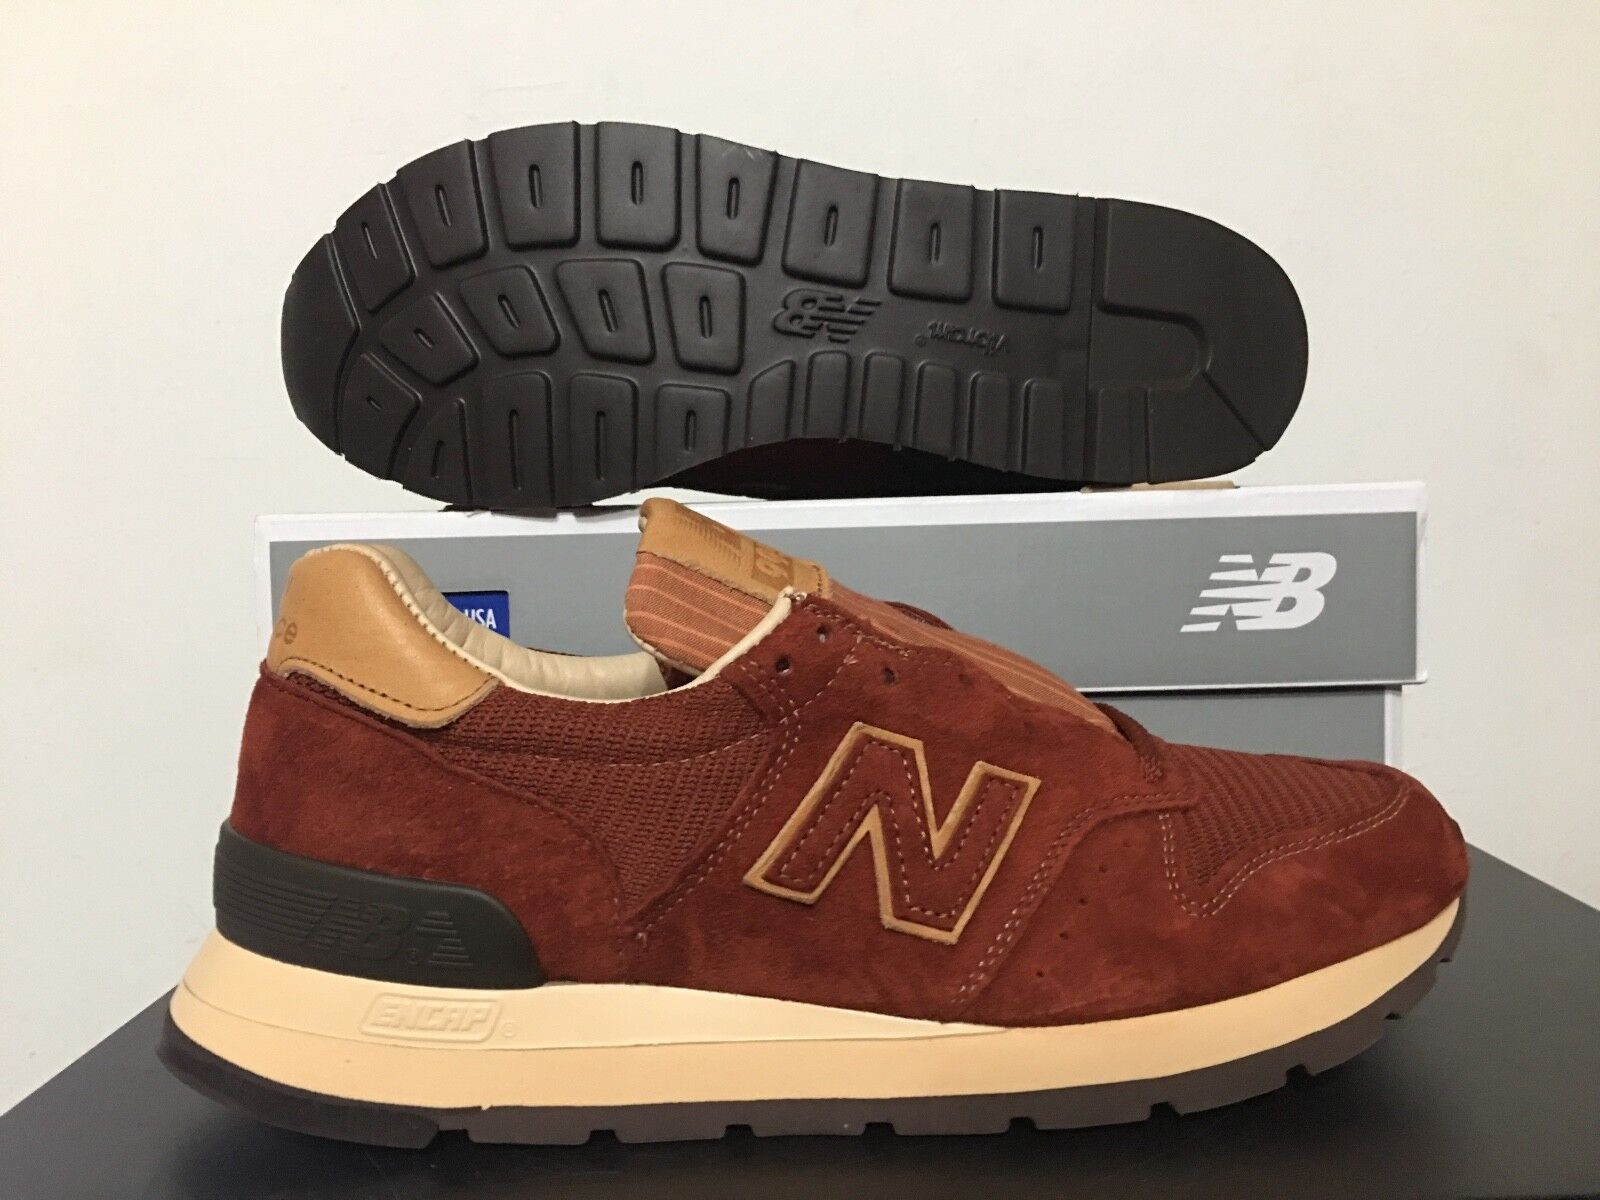 New Balance 995 Classics Baseball Pack Todd Todd Todd Snyder Tan Brown Made in USA M995DBG d5c242